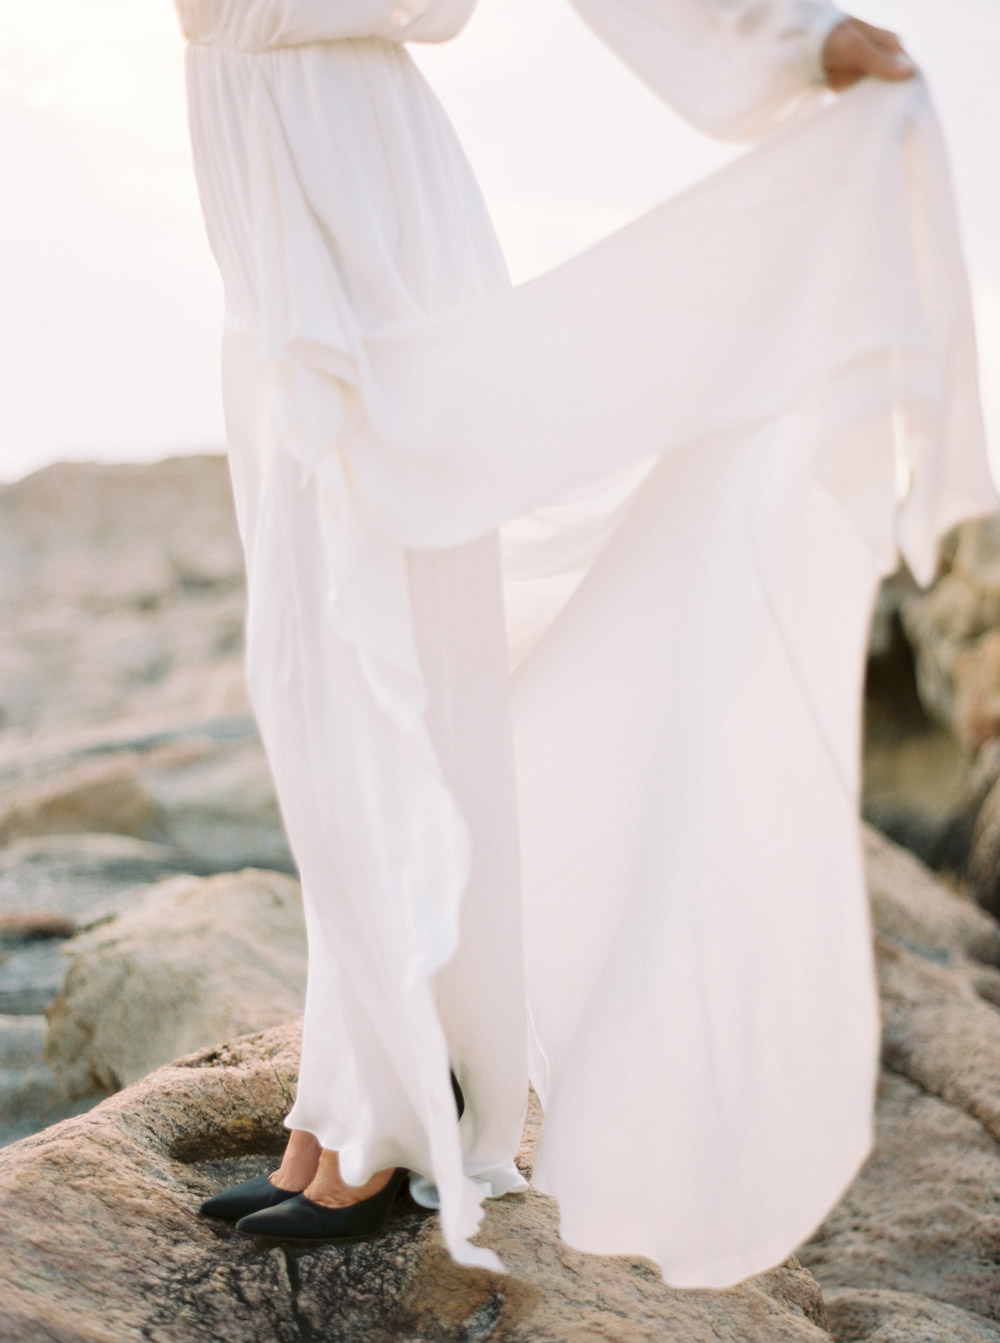 Canal Rocks Elopement Katie Grant Photography-31.jpg